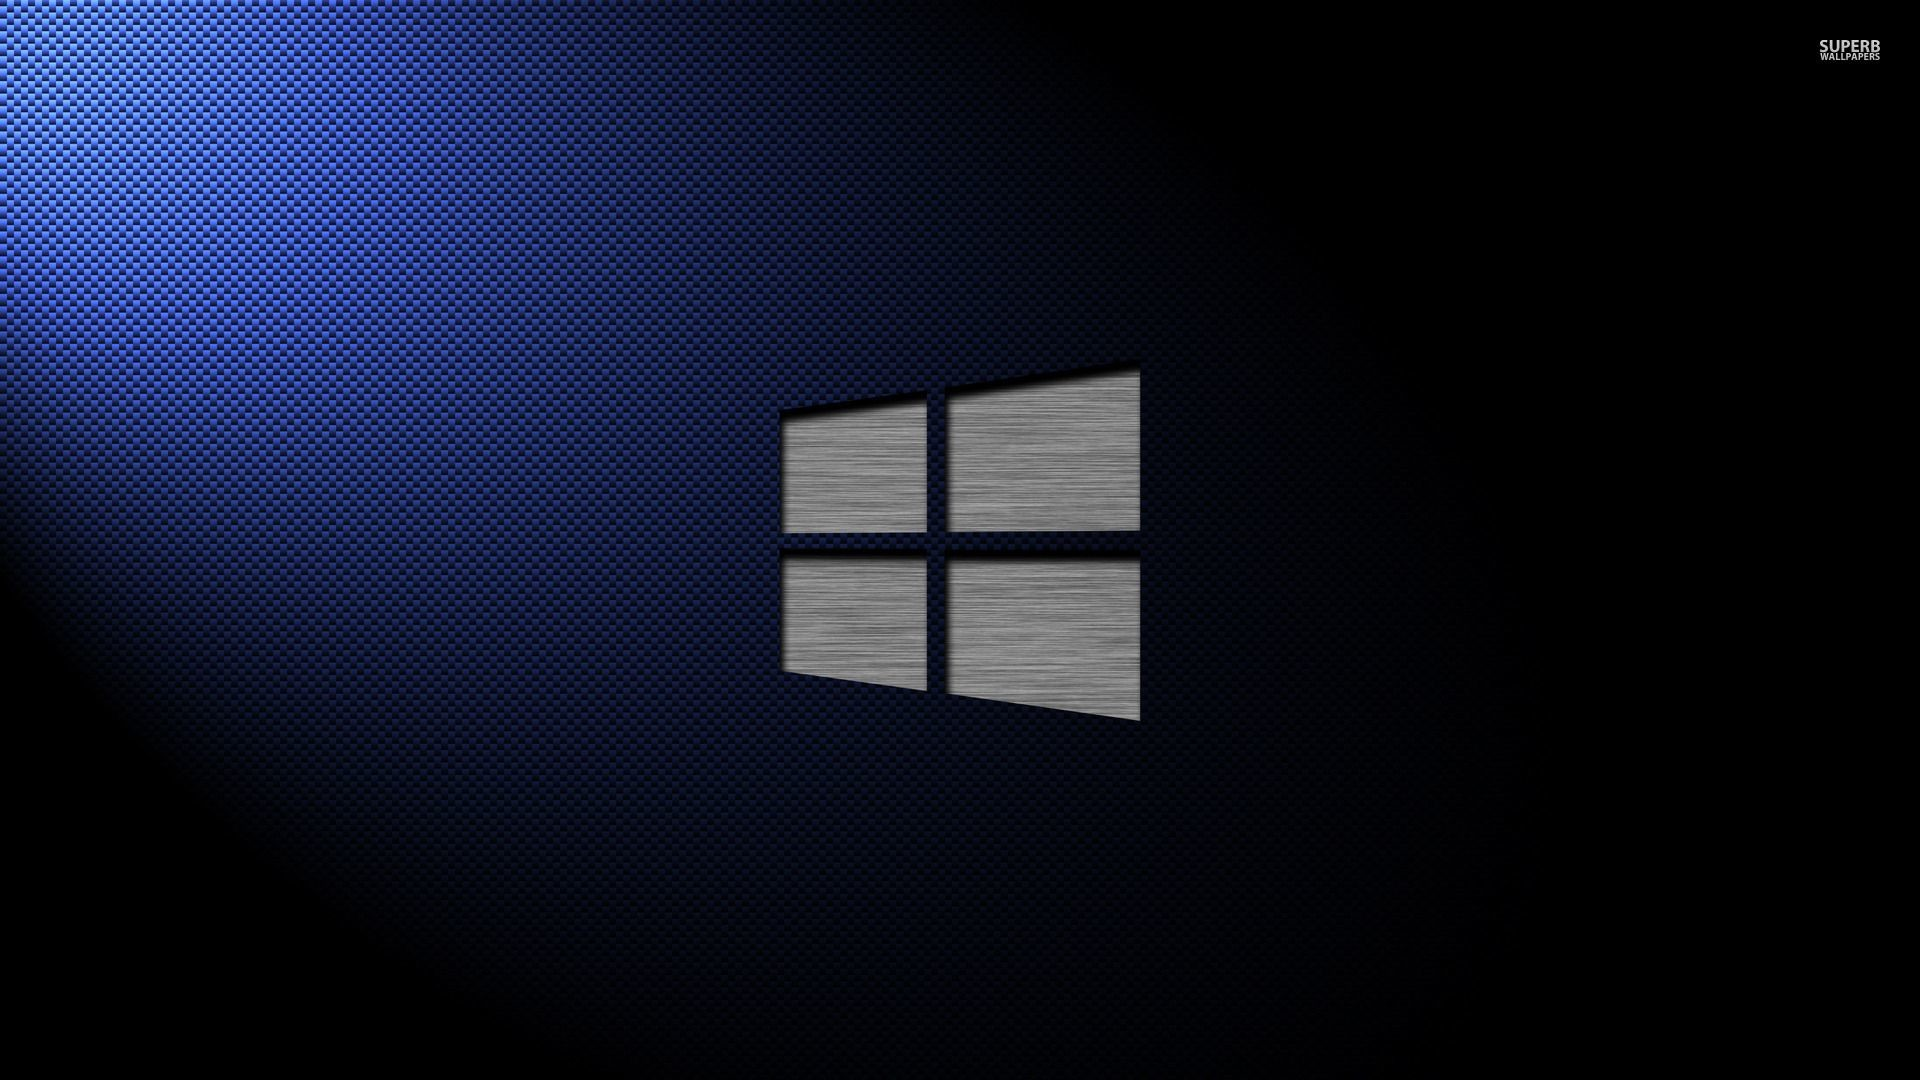 Metal Windows 10 on carbon fiber wallpaper – Computer wallpapers .